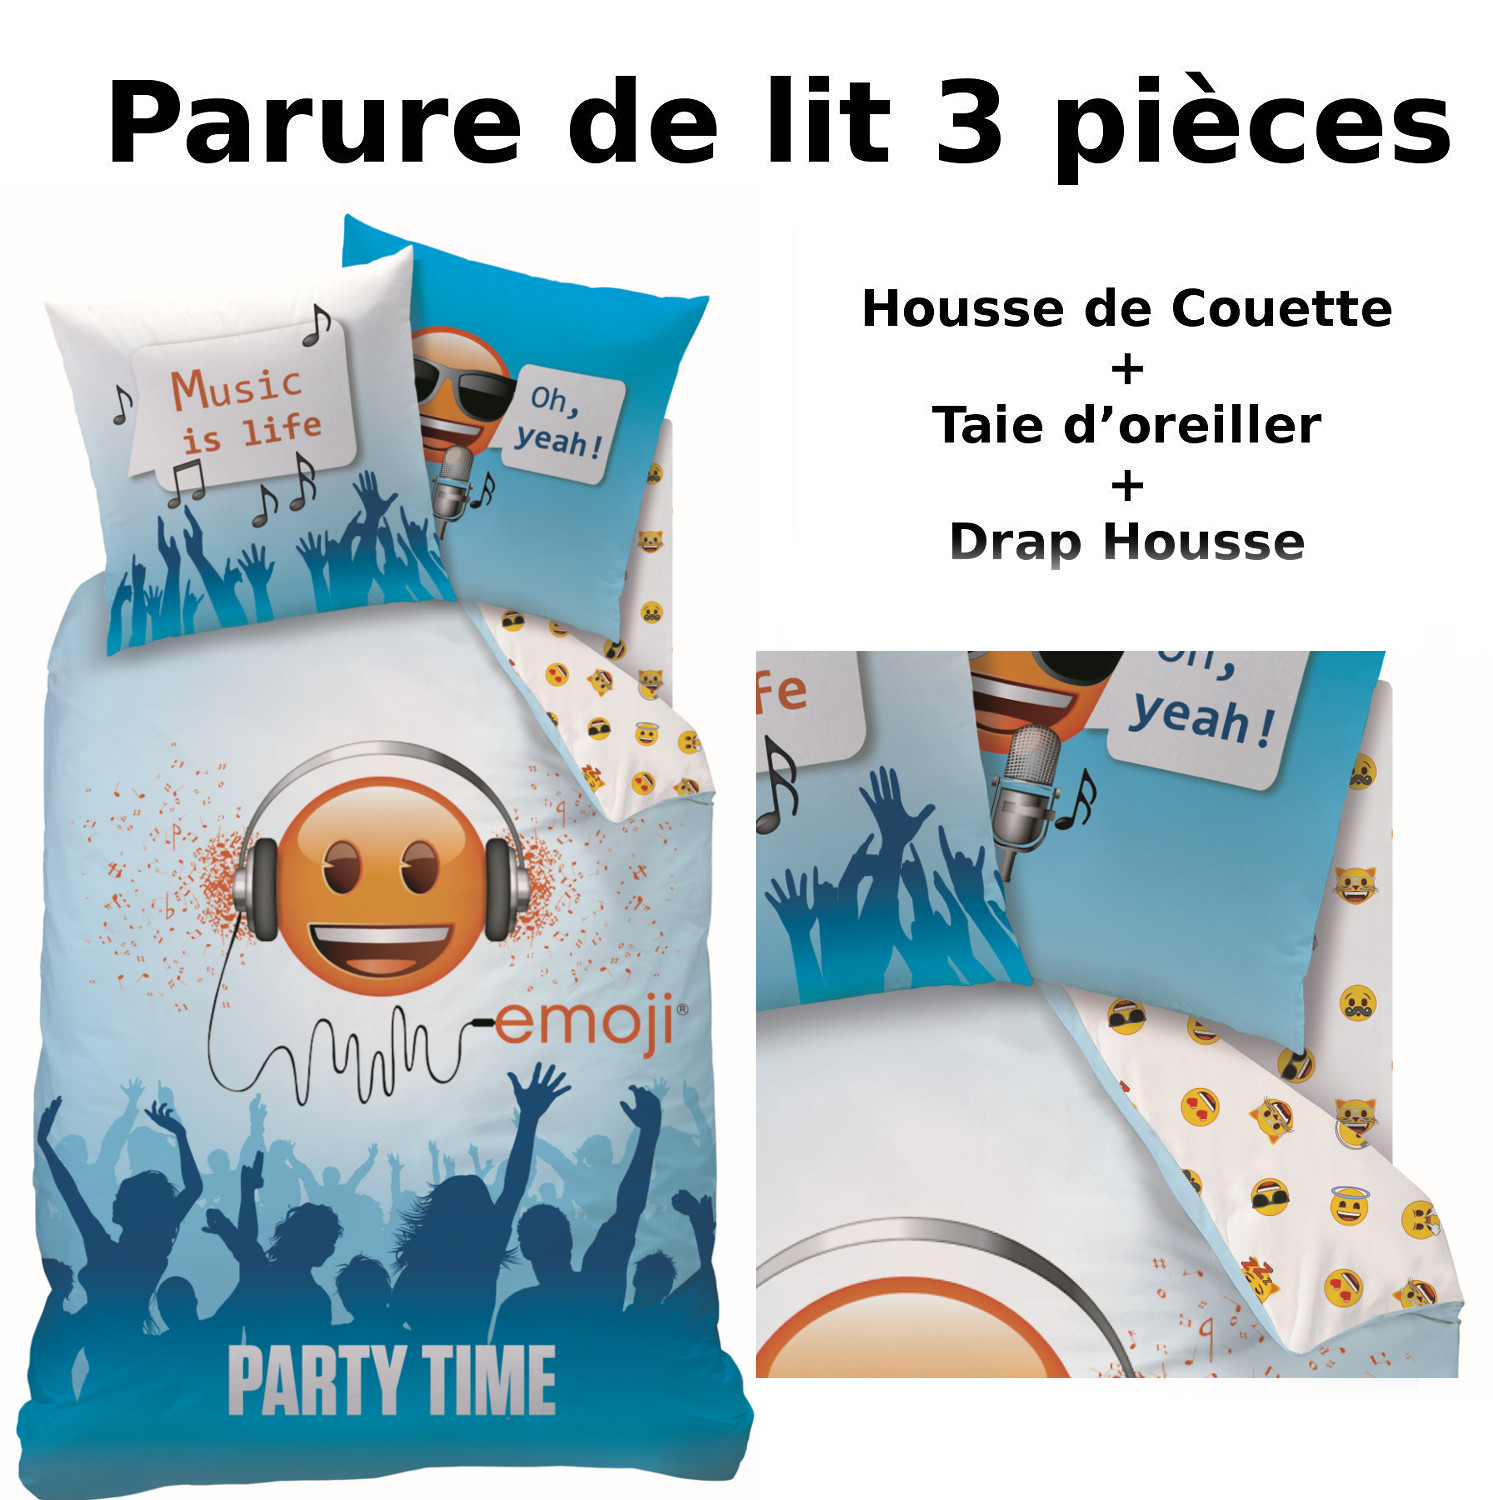 emoji parure de lit 3pcs housse de couette taie d 39 oreiller drap housse smiley party. Black Bedroom Furniture Sets. Home Design Ideas